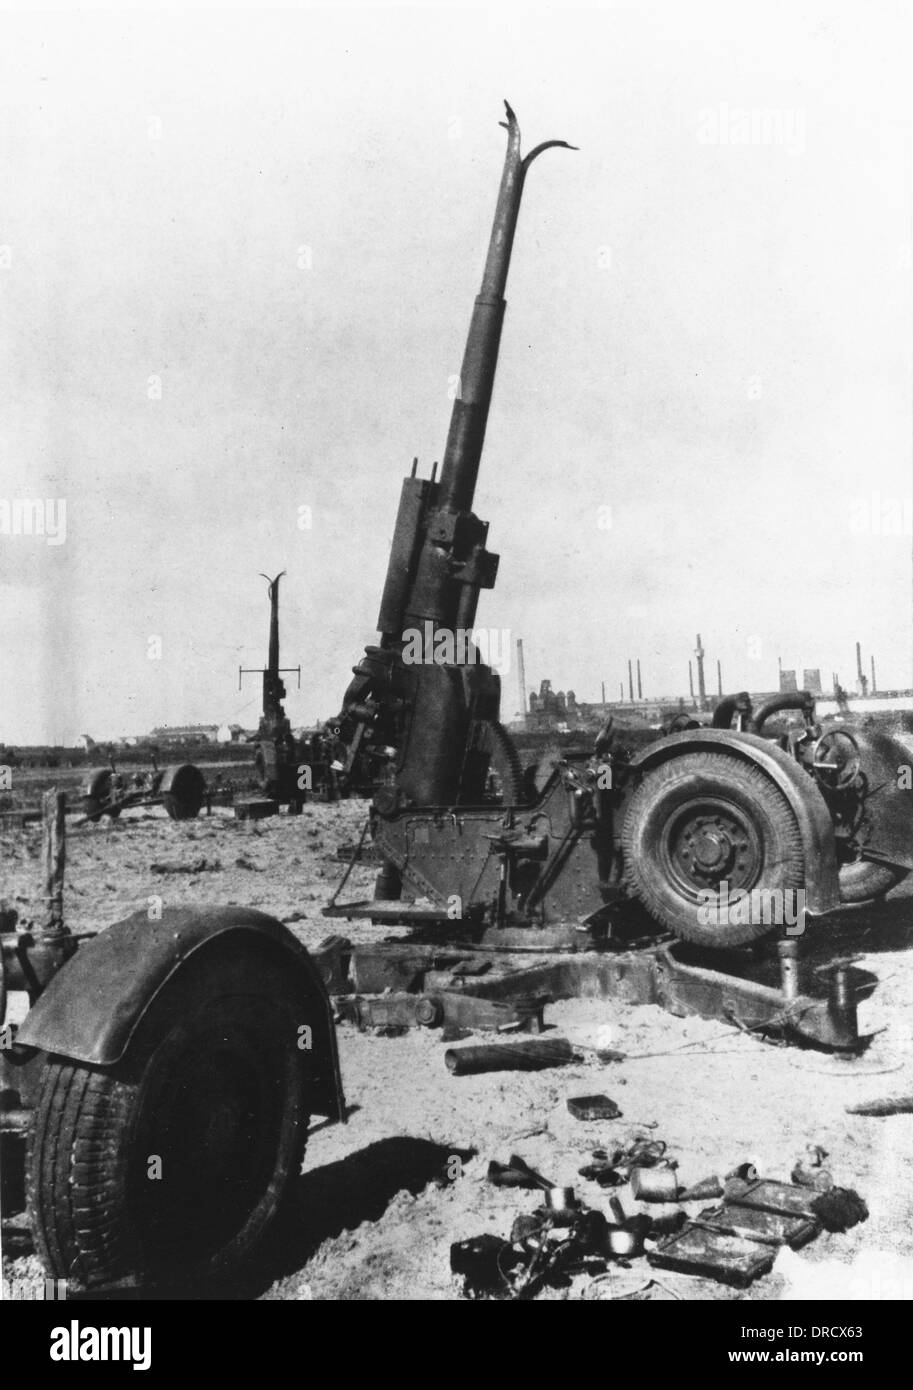 equipment-left-at-dunkirk-wwii-DRCX63.jp